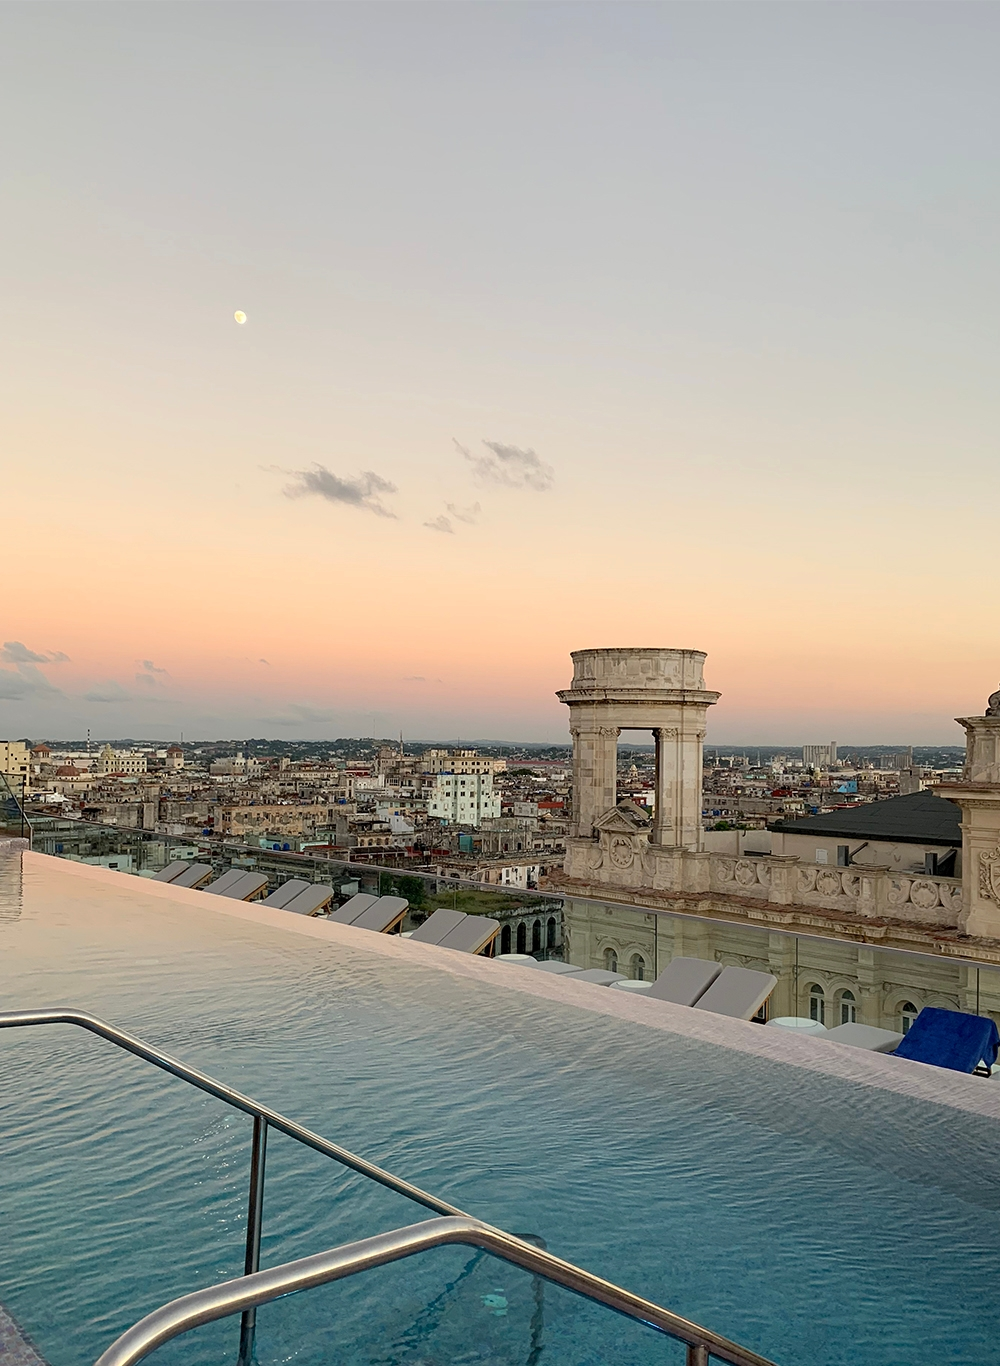 The sun sets over Havana from a rooftop pool